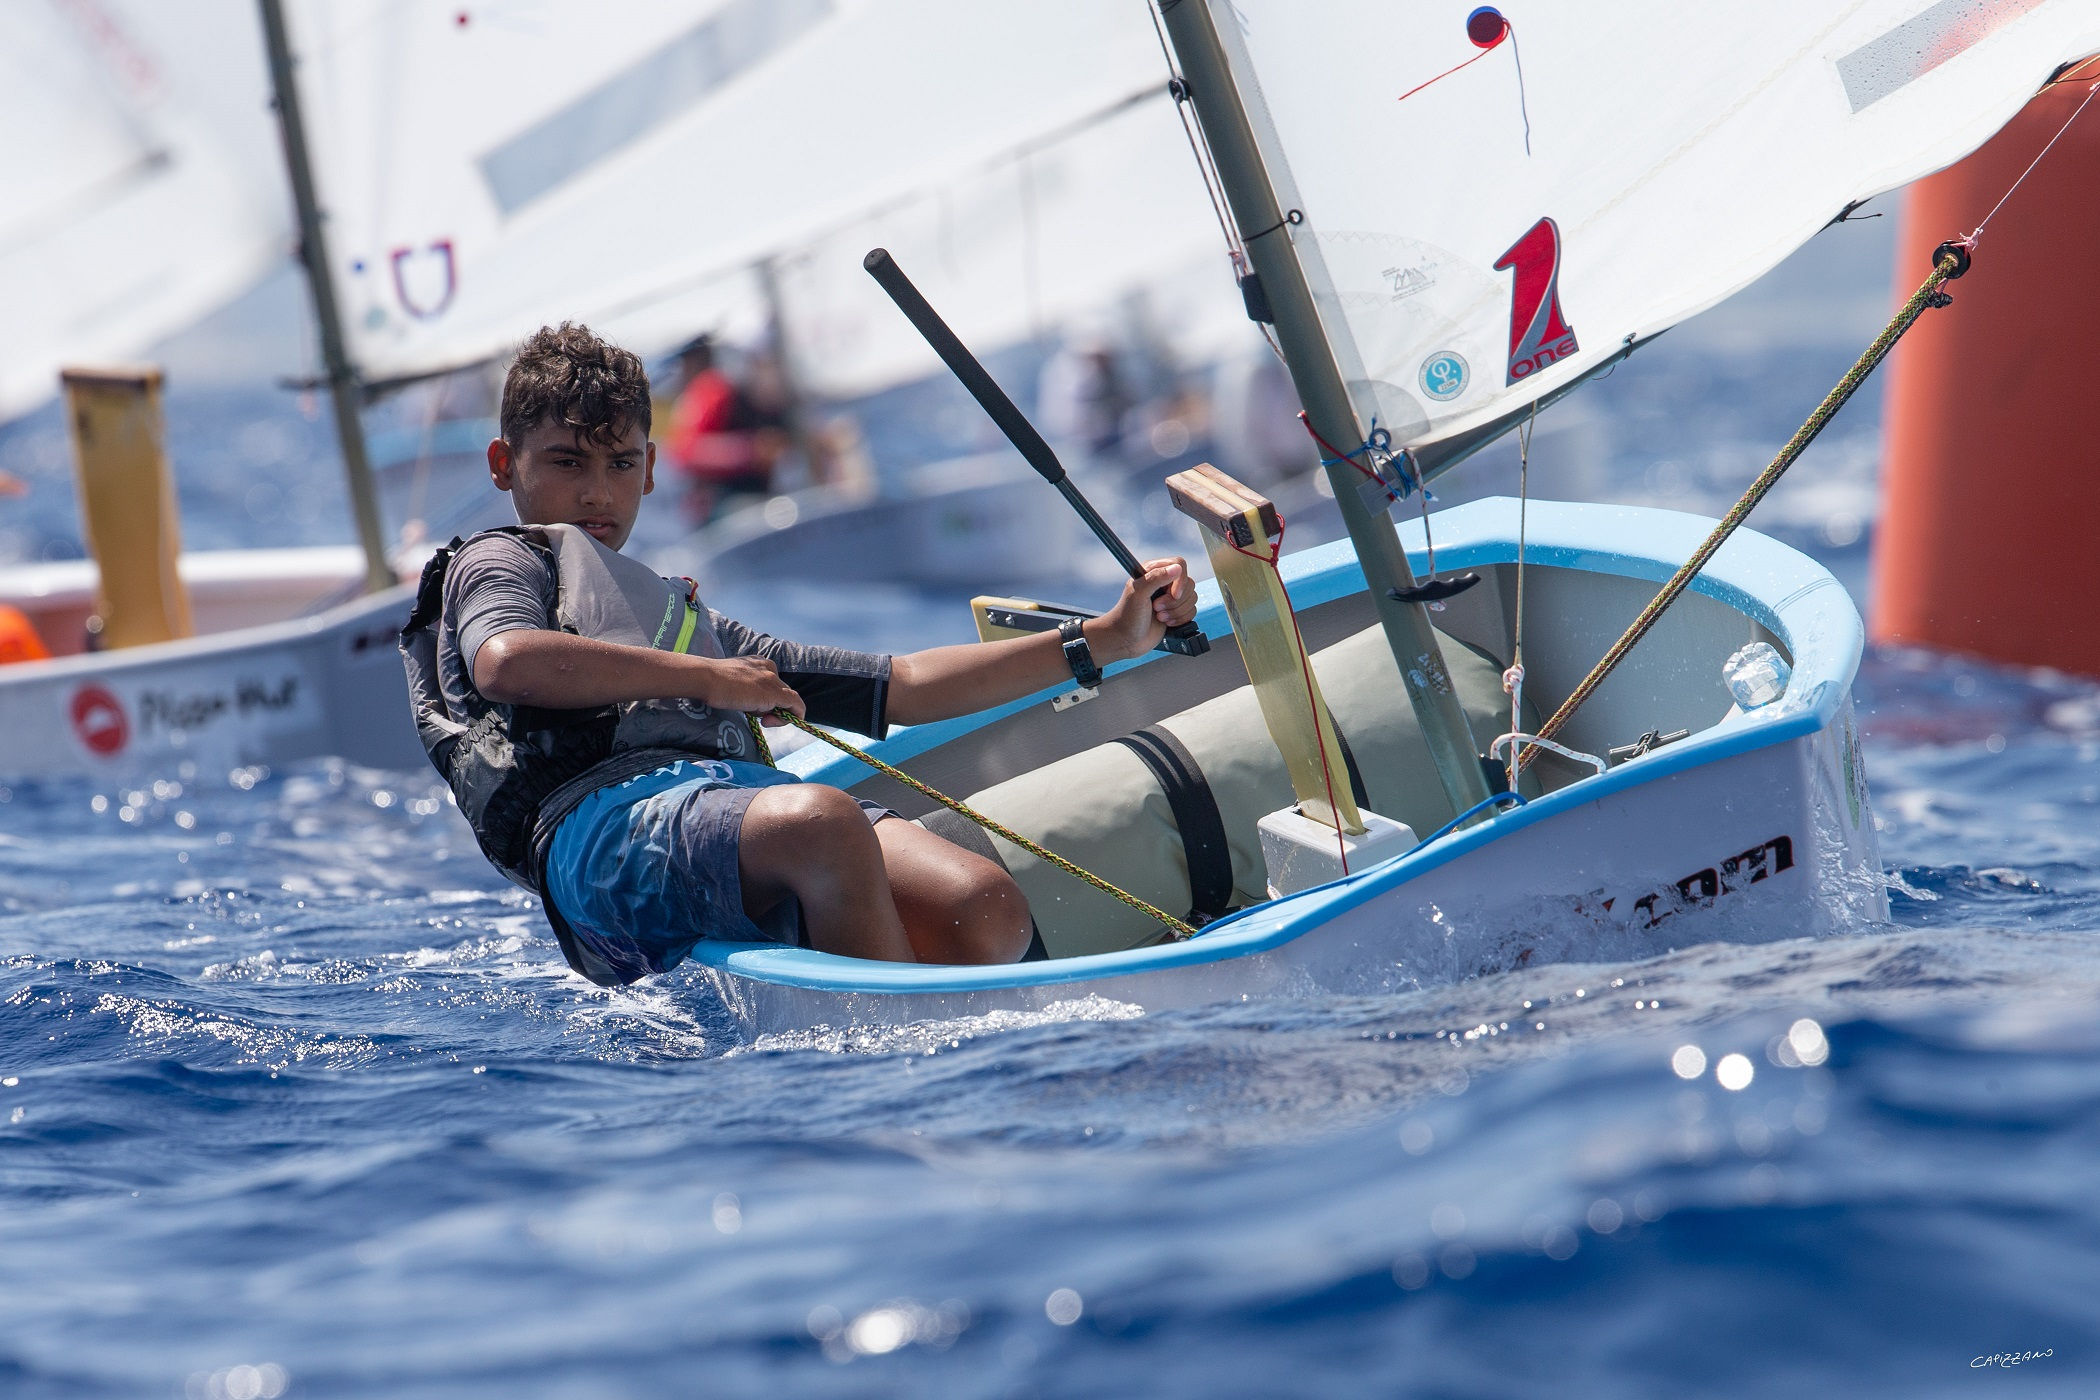 Oman youth sailors achieve best ever results racing at championships in Asia and Africa